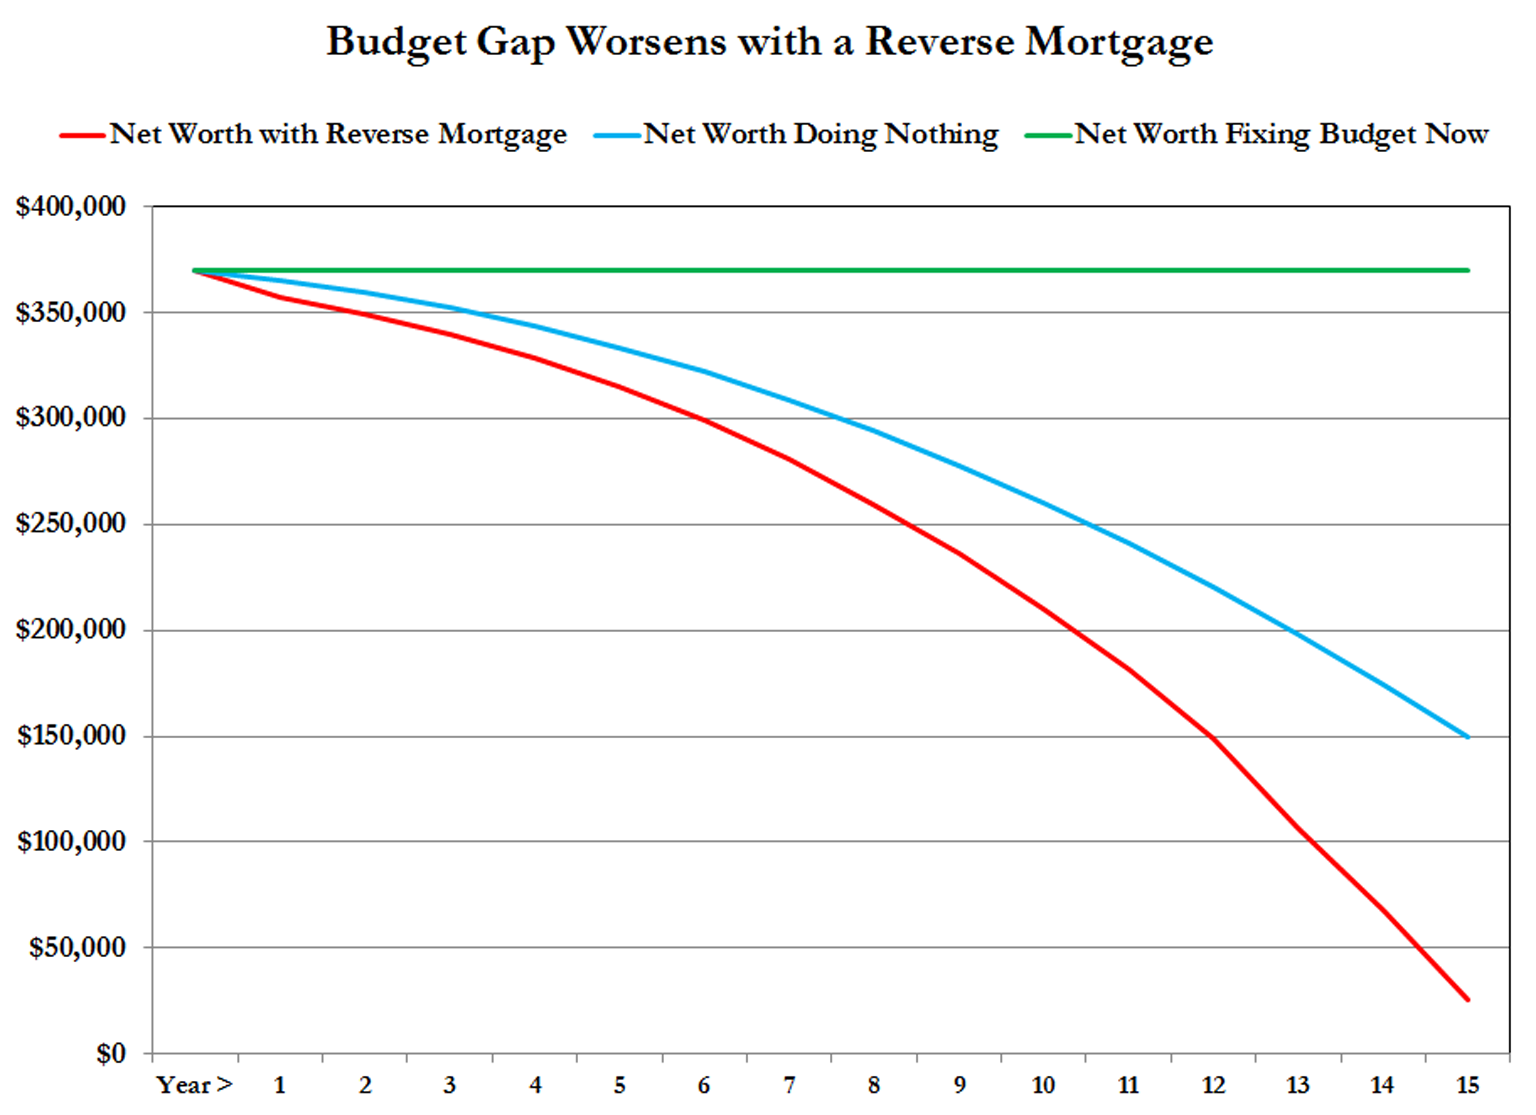 reverse mortgages hurt budgets